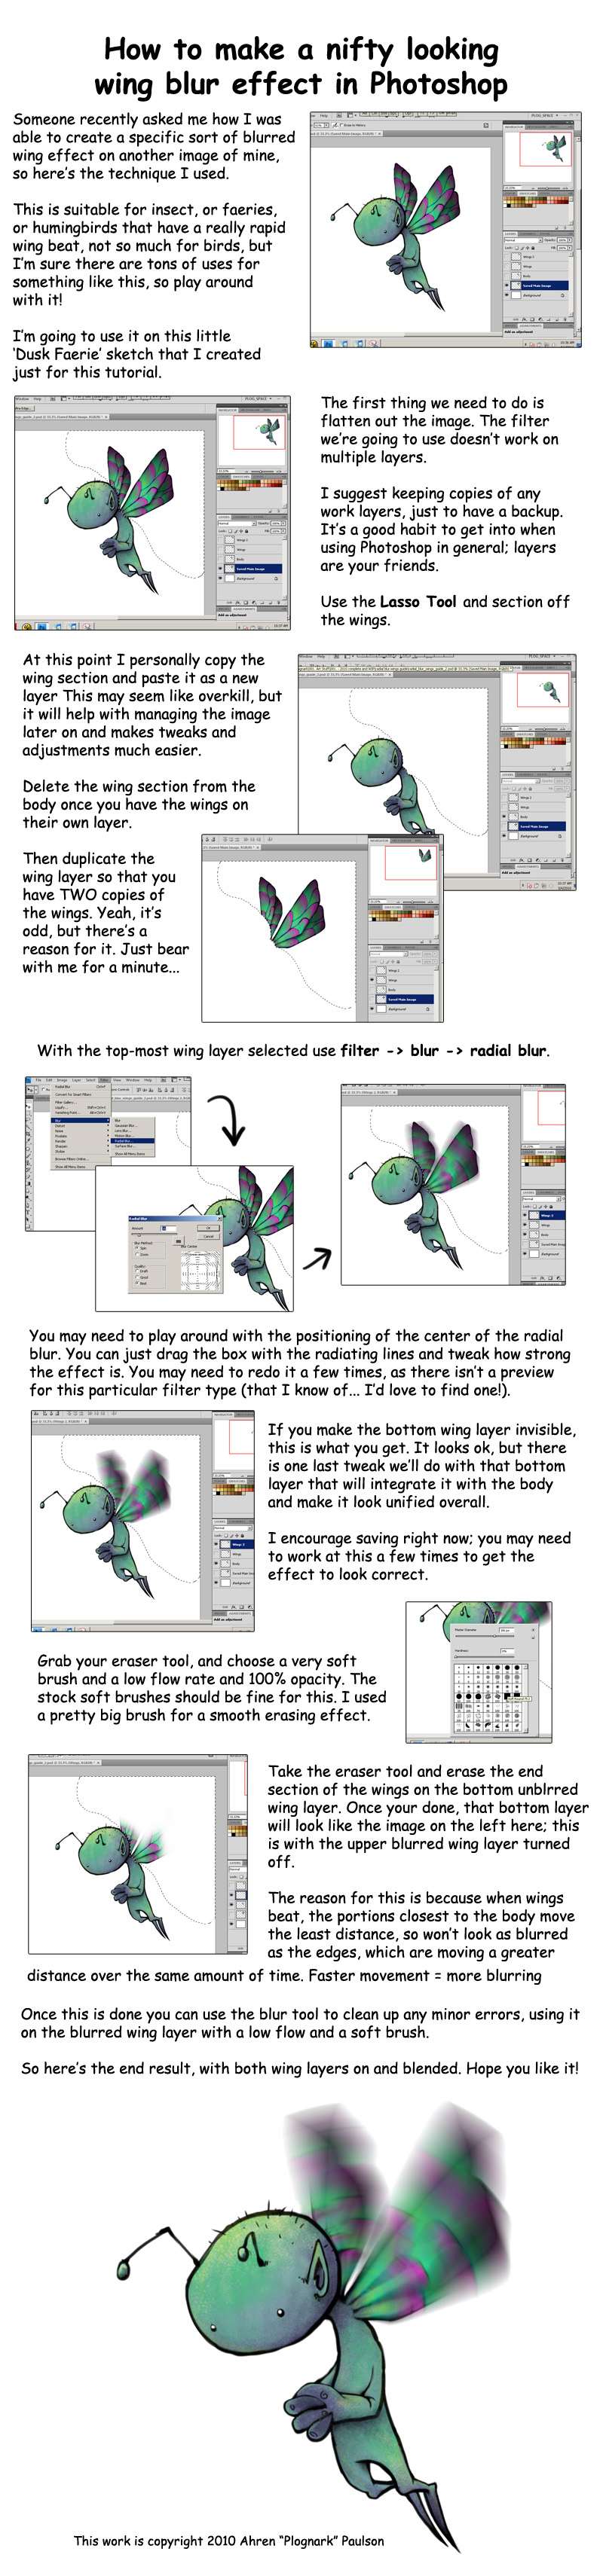 Blurred Insect Wing Tutorial by Plognark